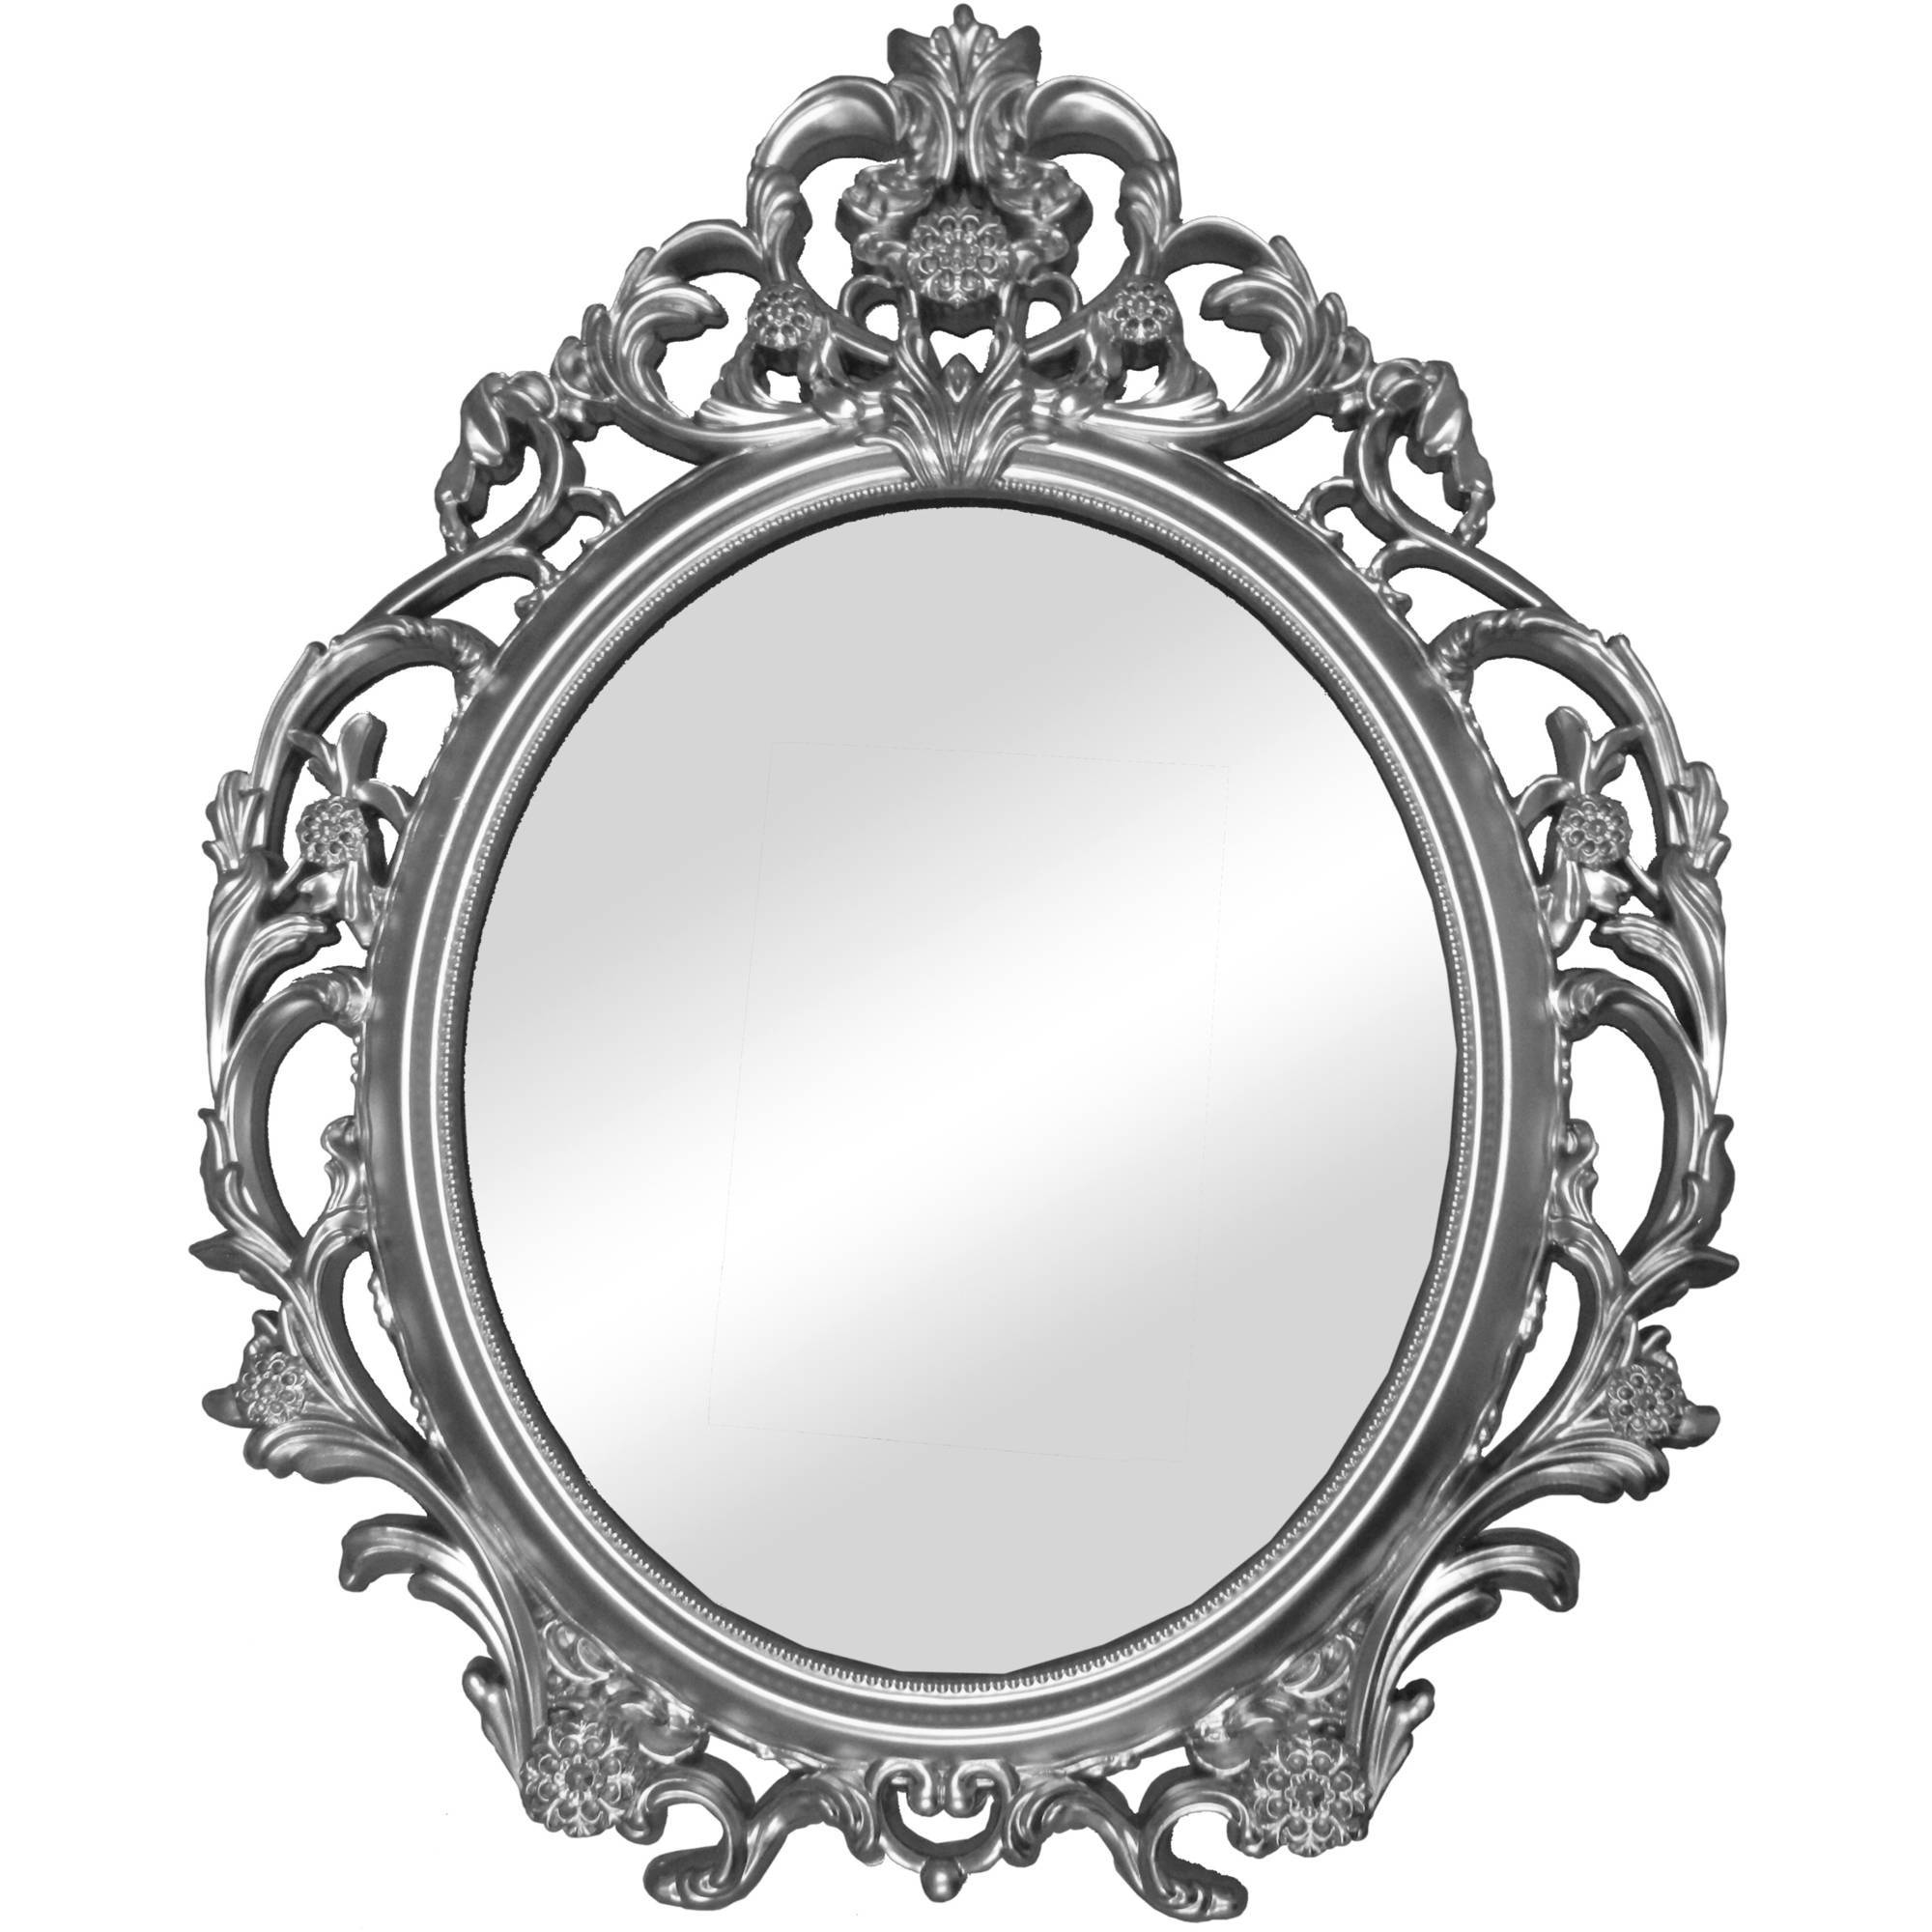 Better Homes And Gardens Baroque Wall Mirror – Walmart Intended For Silver Baroque Mirrors (View 4 of 15)